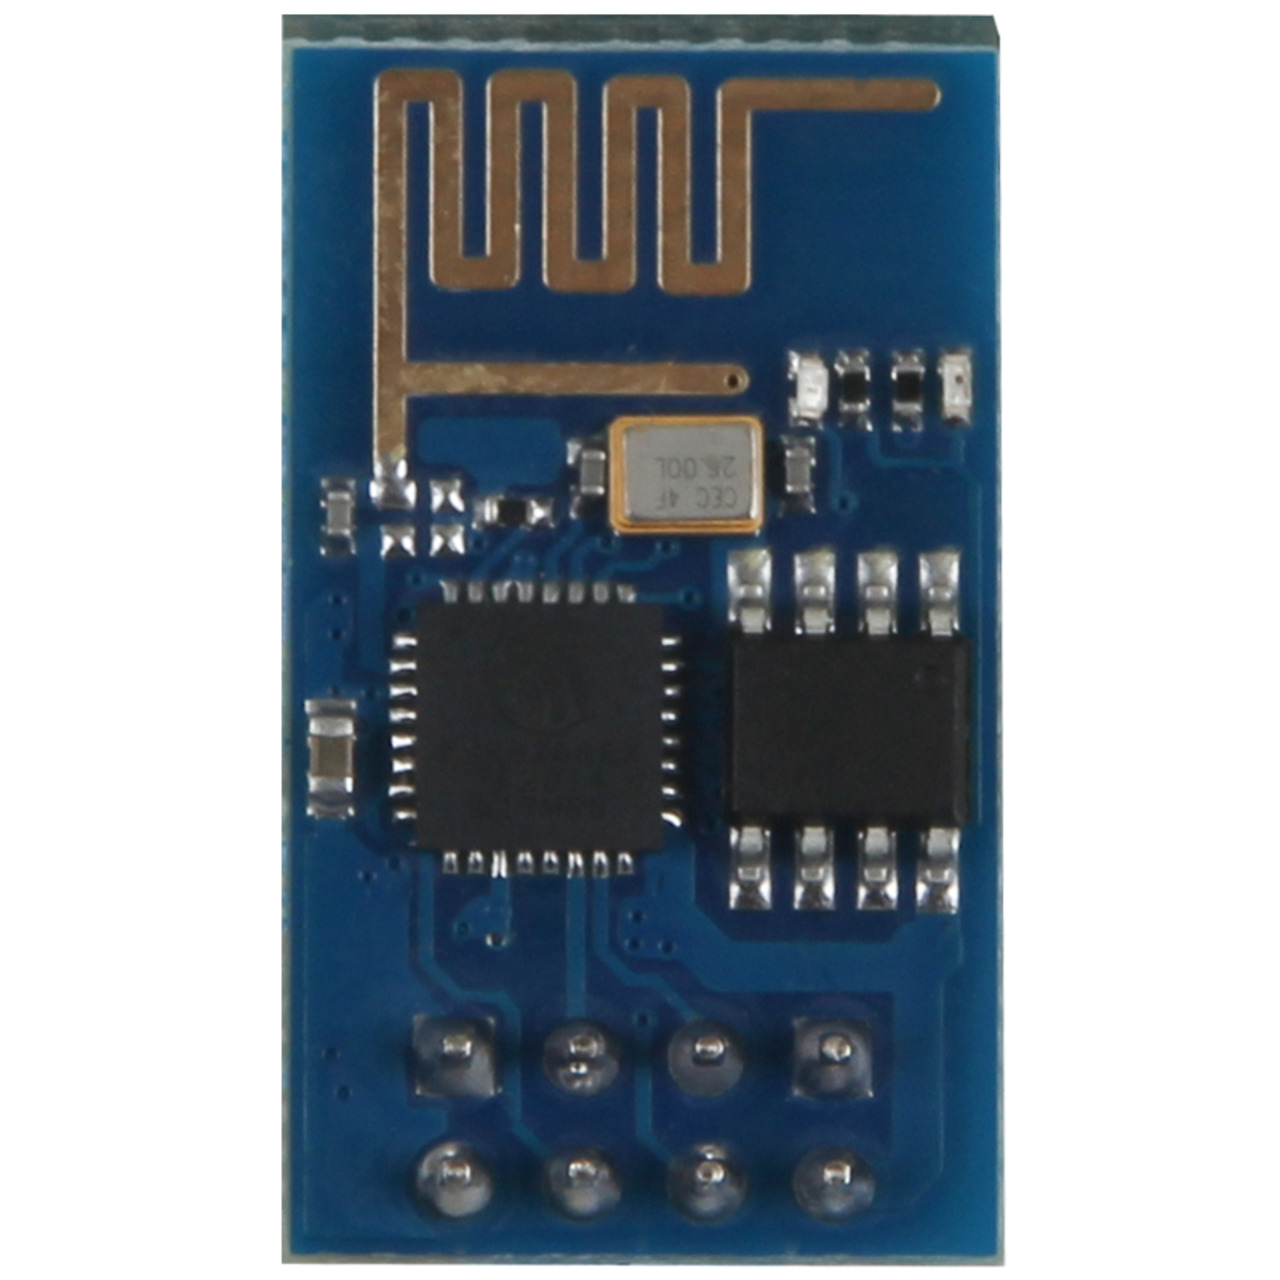 Joy-IT Wifi Modul ESP8266- für Minicomputer